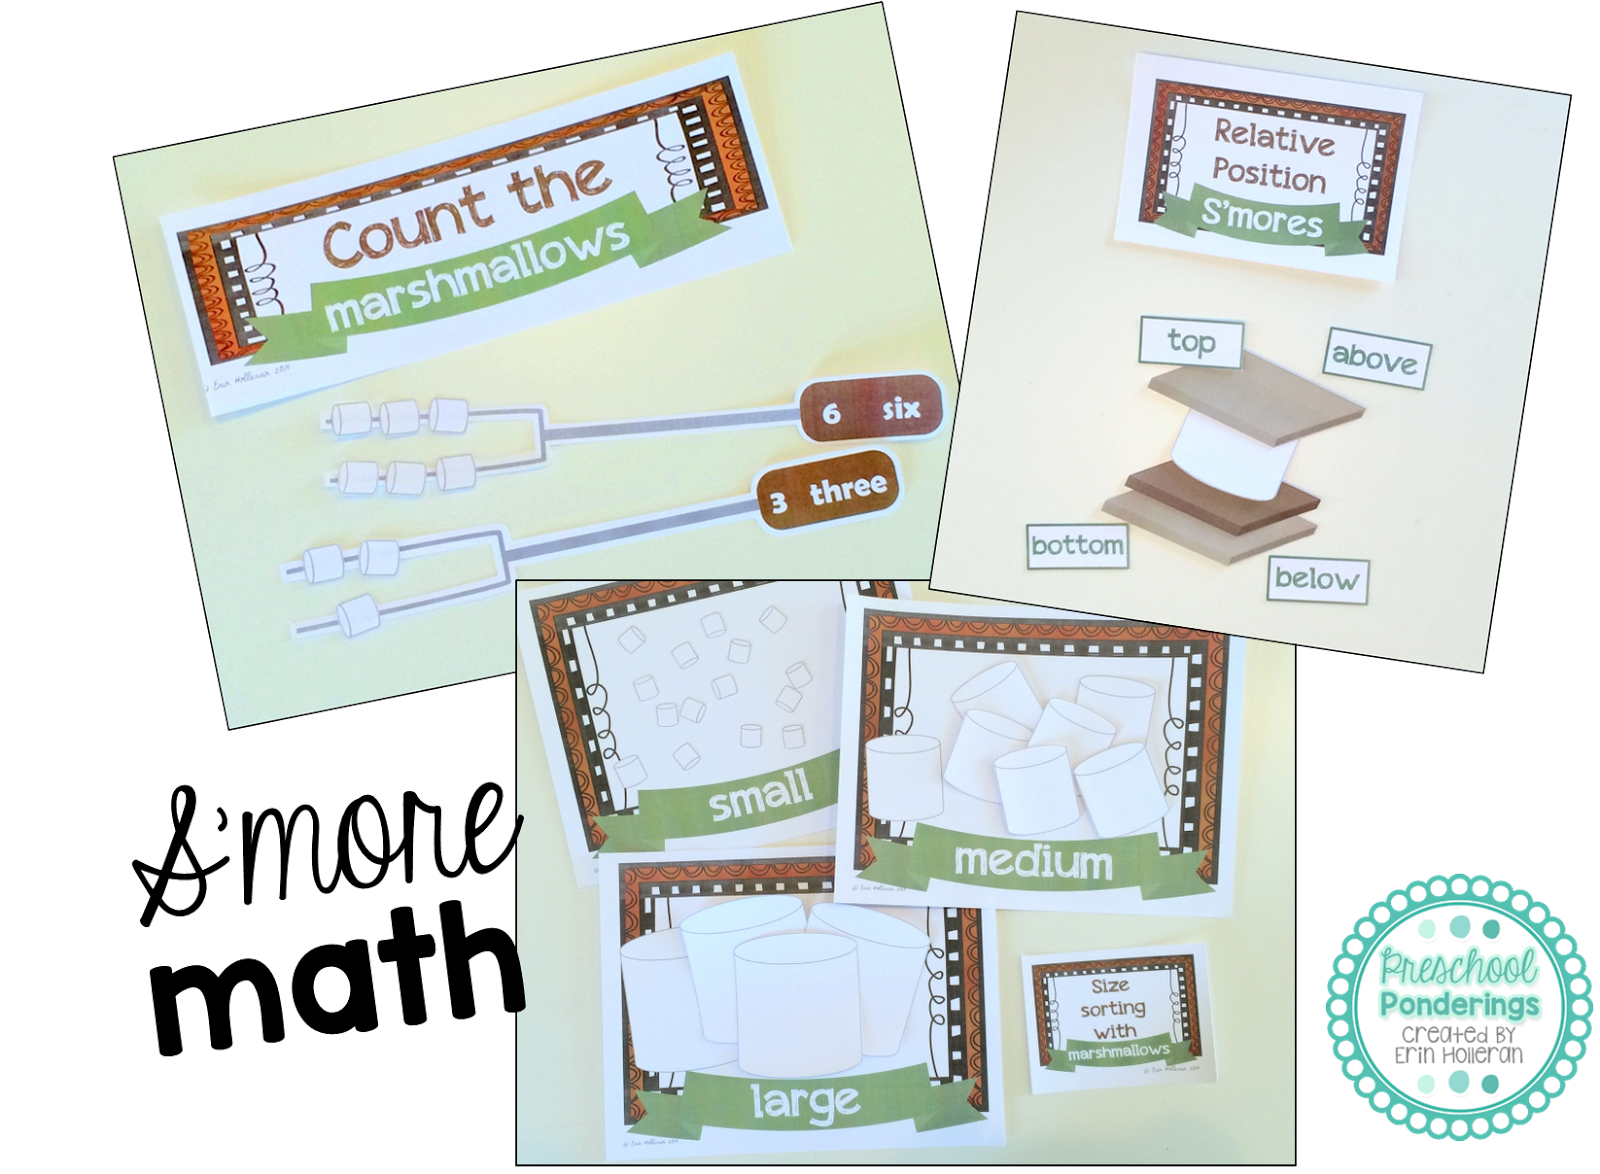 My Smore Math Set Includes Three Different Activities That Cover Very Concepts In The First Activity Children Are Asked To Count